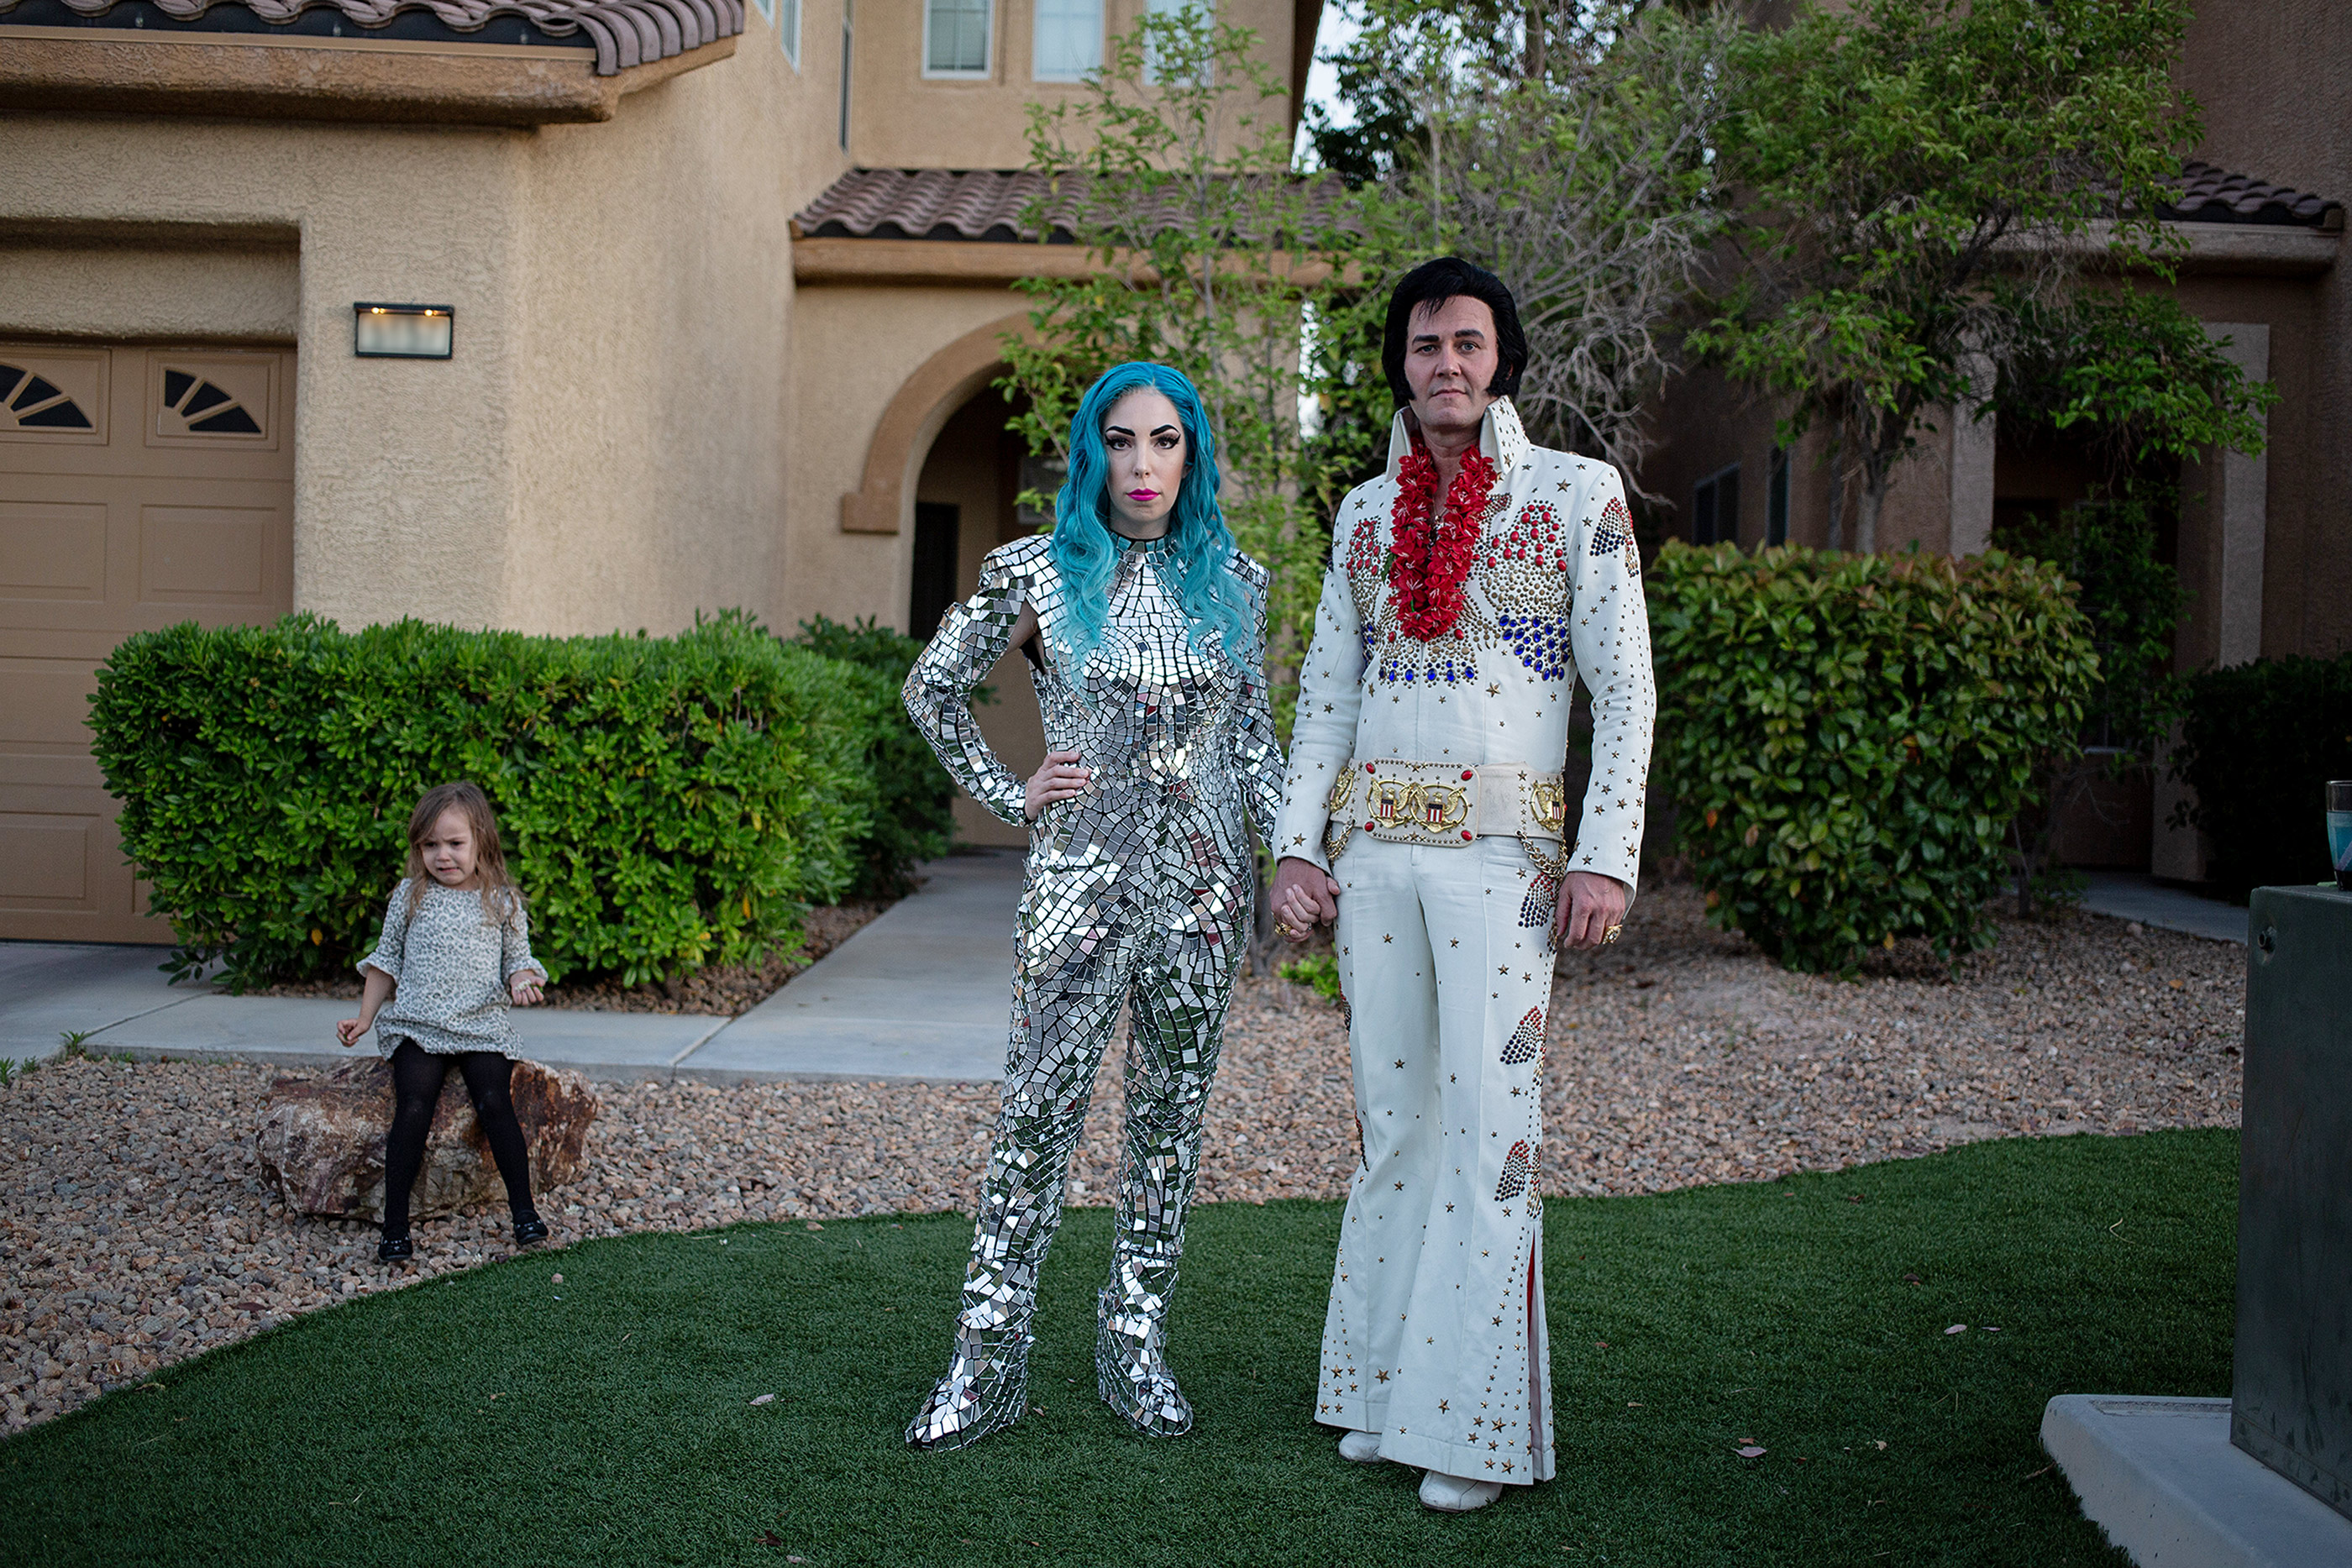 Tierney Allen, 33, Lady Gaga Impersonator, Travis Allen, 42, Elvis Impersonator, and their daughter Charlotte, 3, Las Vegas. The couple is two of more than 80,000 gig workers in Las Vegas who are now unable to make a living.